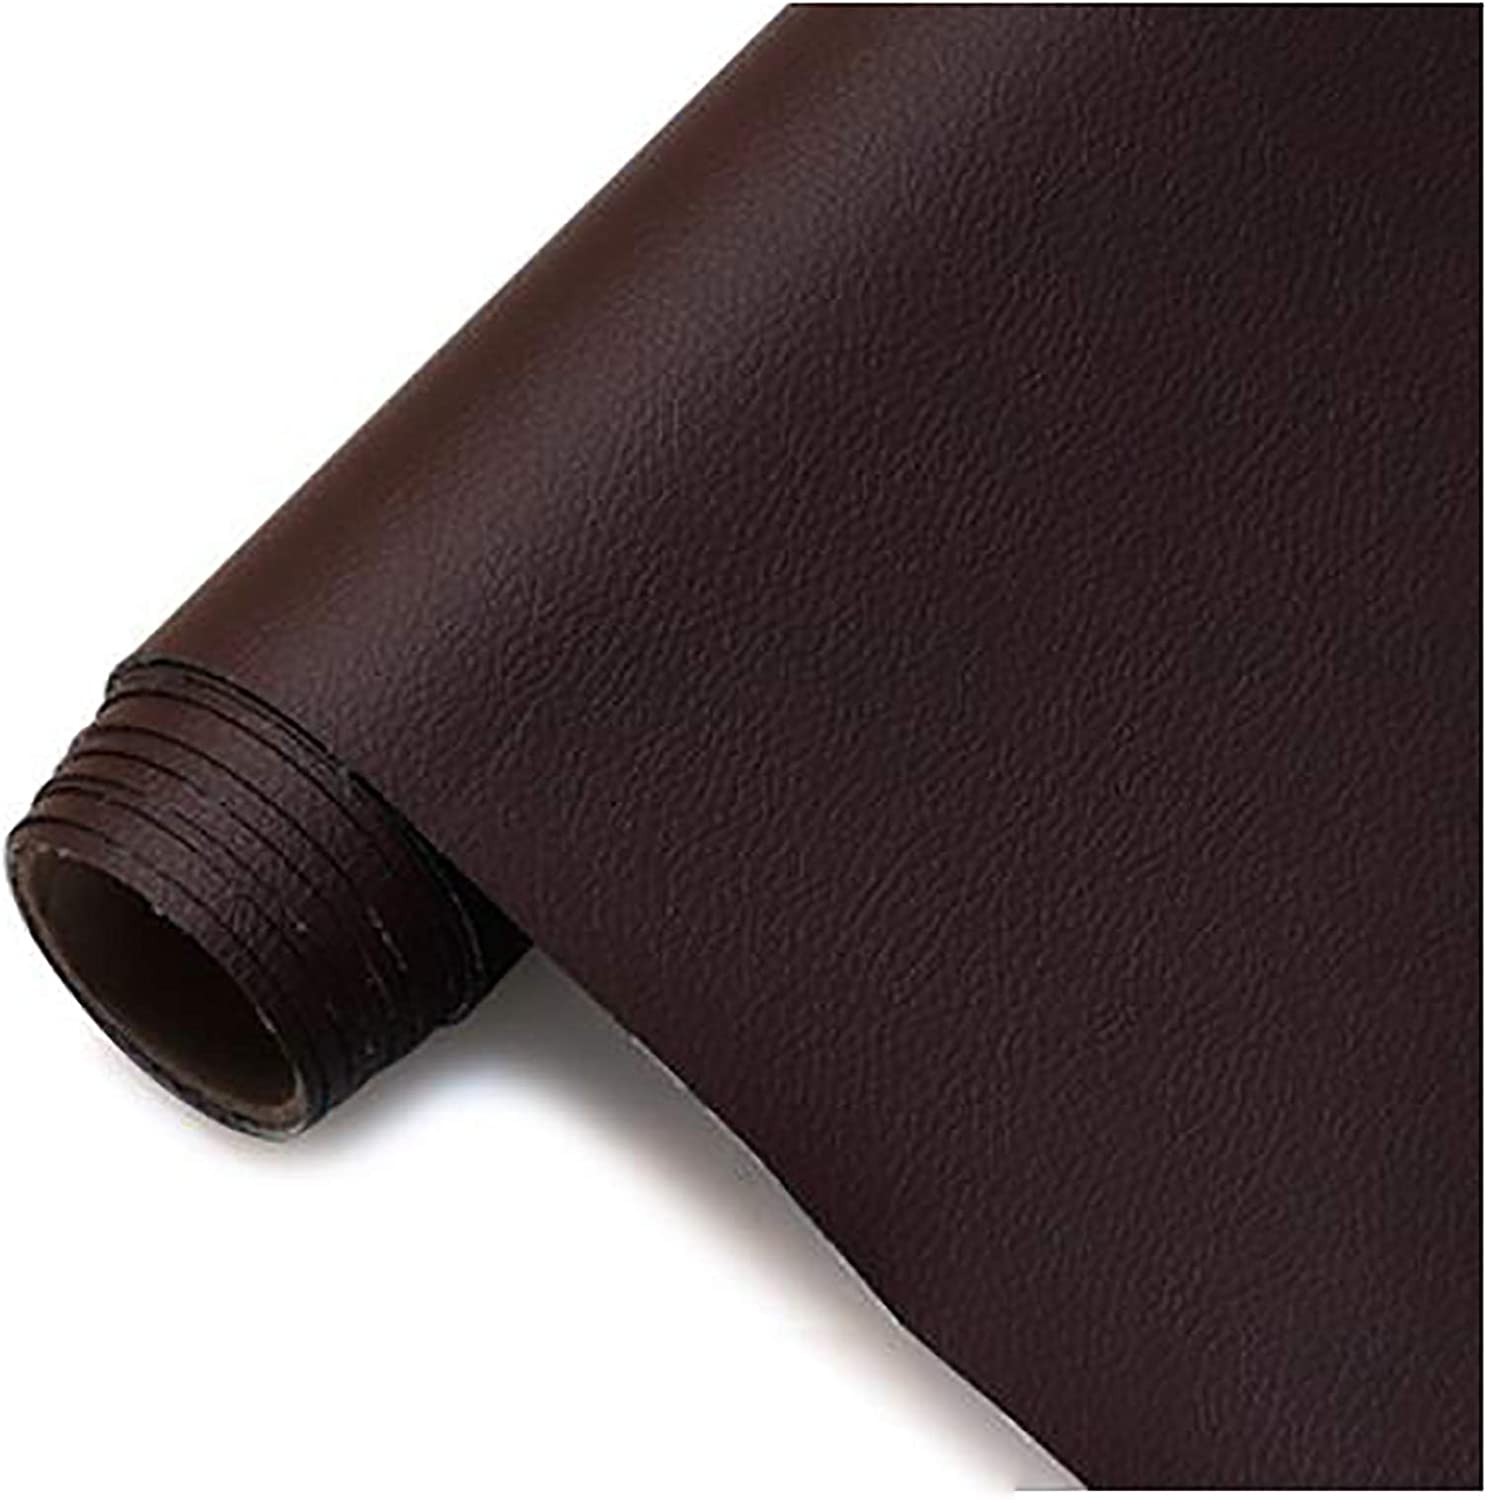 GERYUXA Faux Leather Selling rankings Fabric Leatherette Leathercloth Mater Vinyl Max 63% OFF